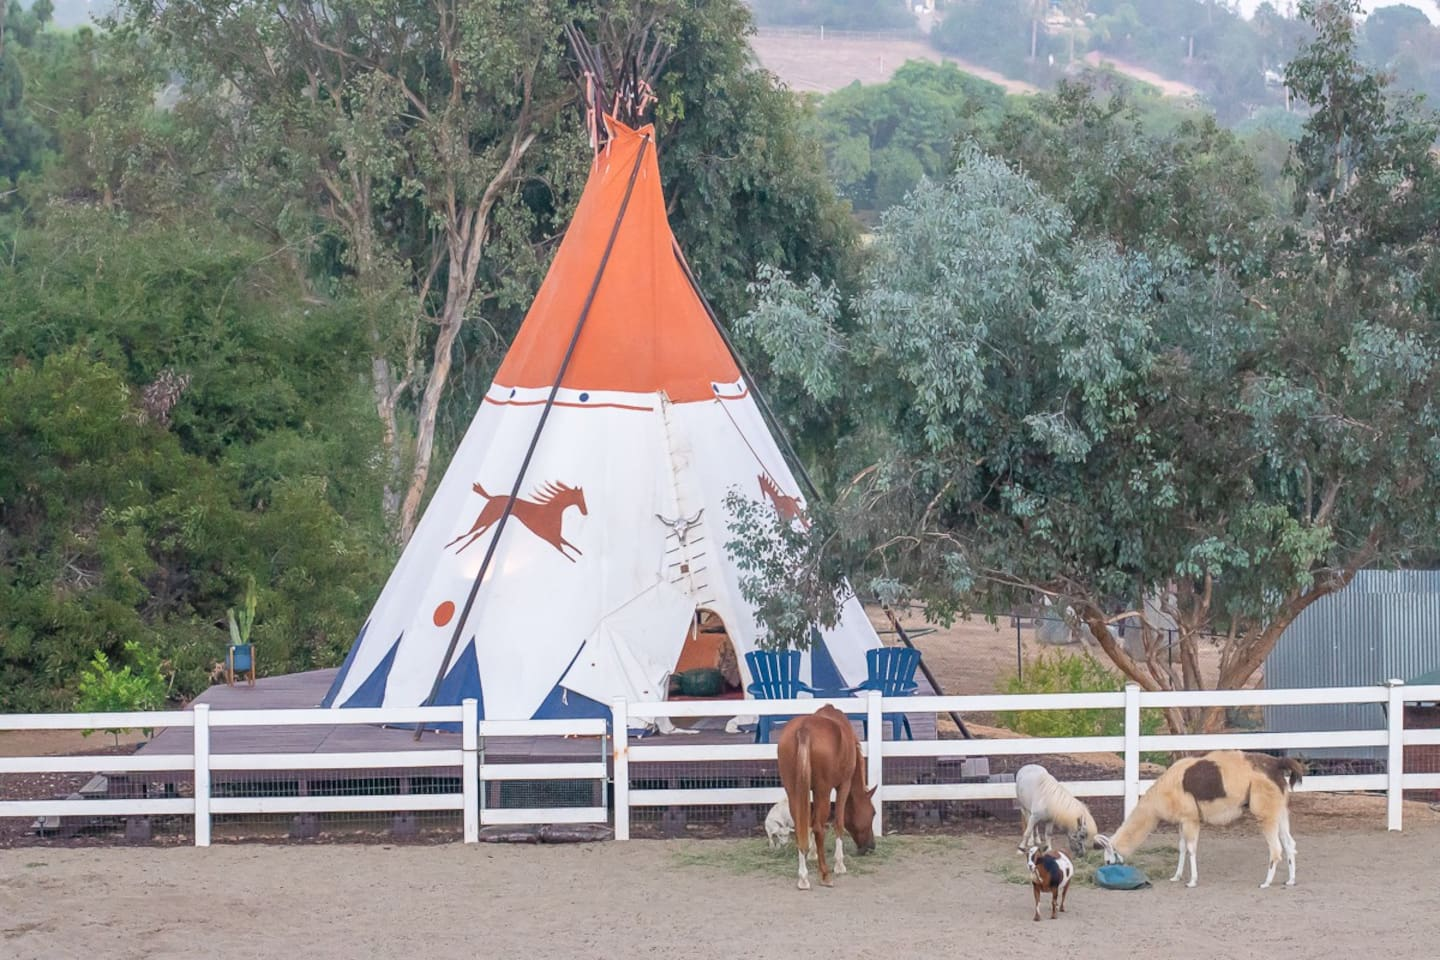 Tipi glamping on a scenic ranch near San Diego